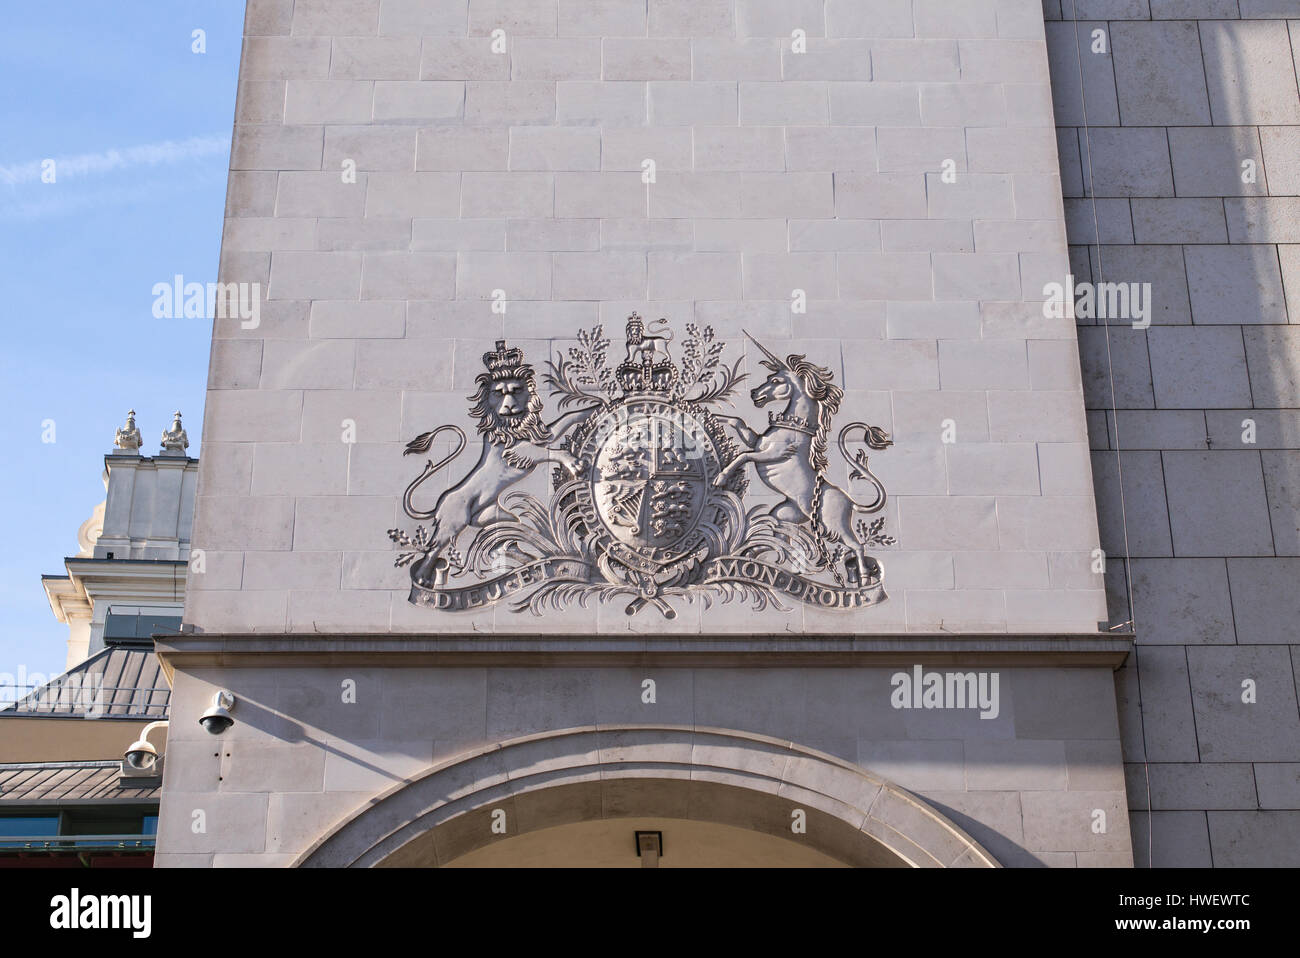 Royal Coat of Arms on the shopping arcade entrance to the Royal Opera House at Covent Garden. London. UK - Stock Image